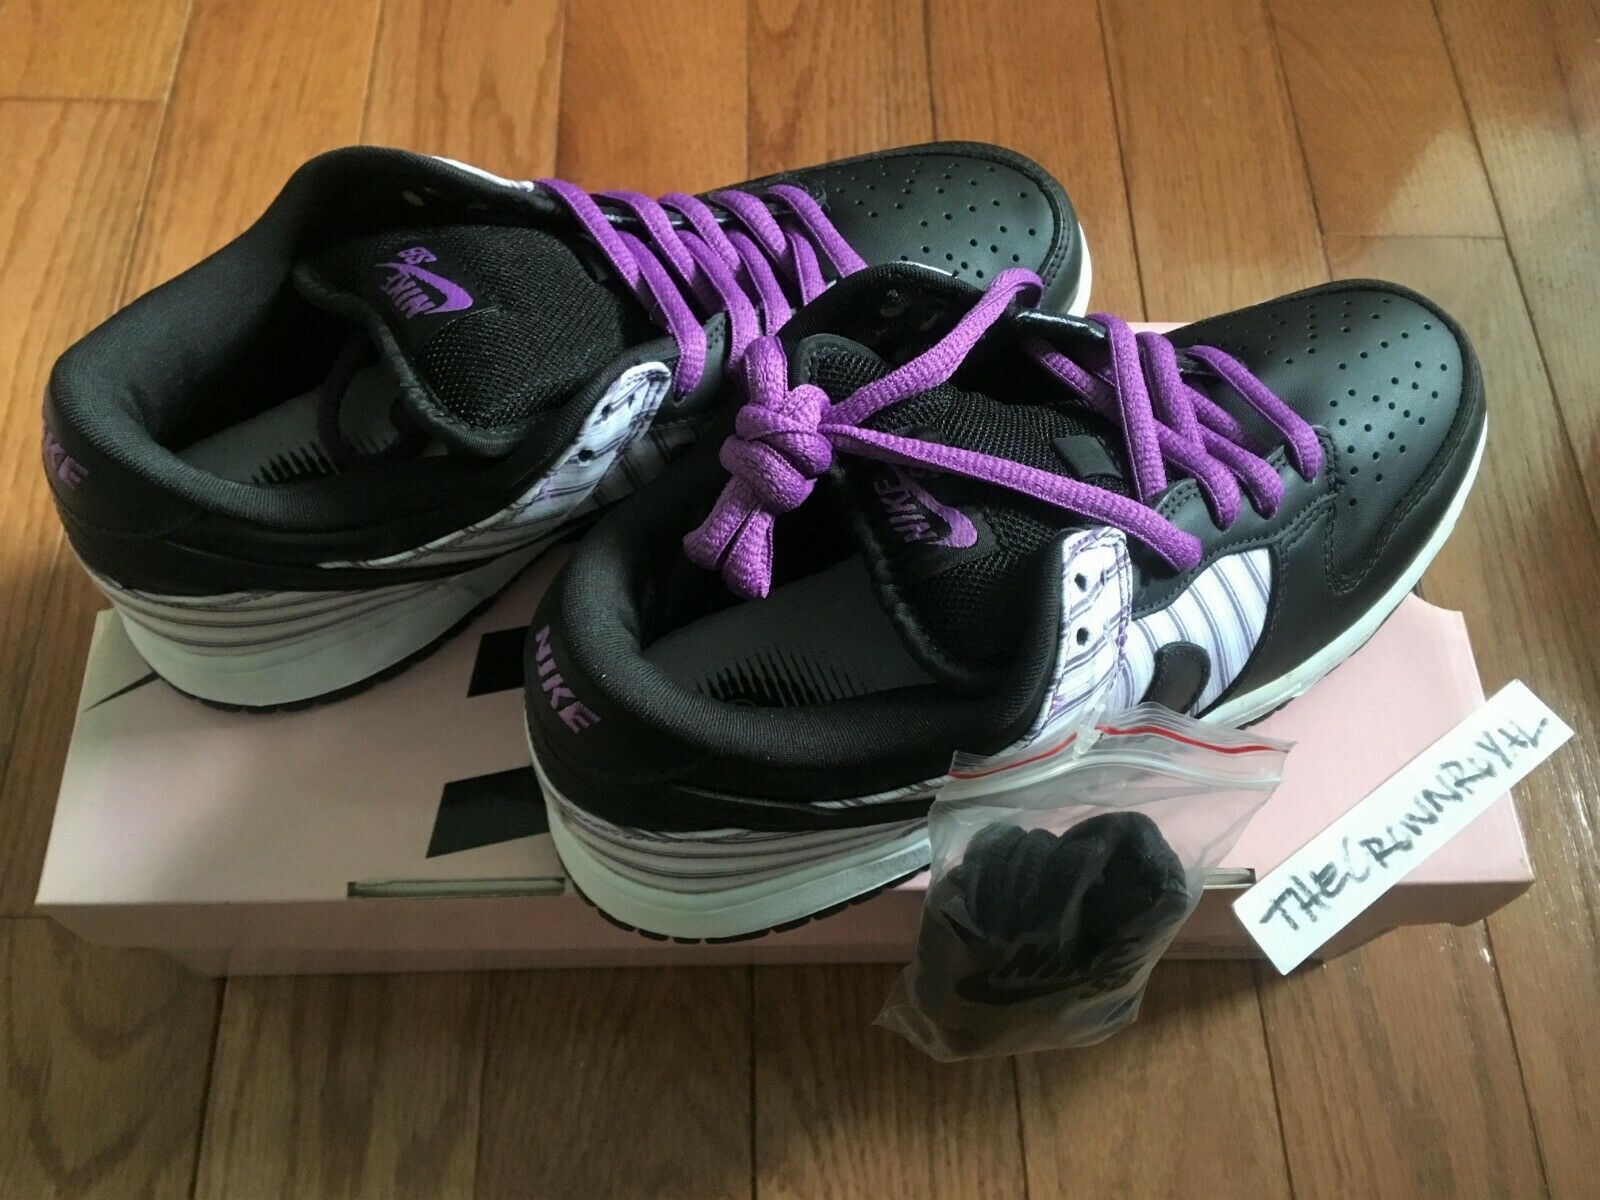 2005 DS Nike Dunk SB Low Purple Avenger 8 Stussy Diamond Unkle Supreme 7 Canary